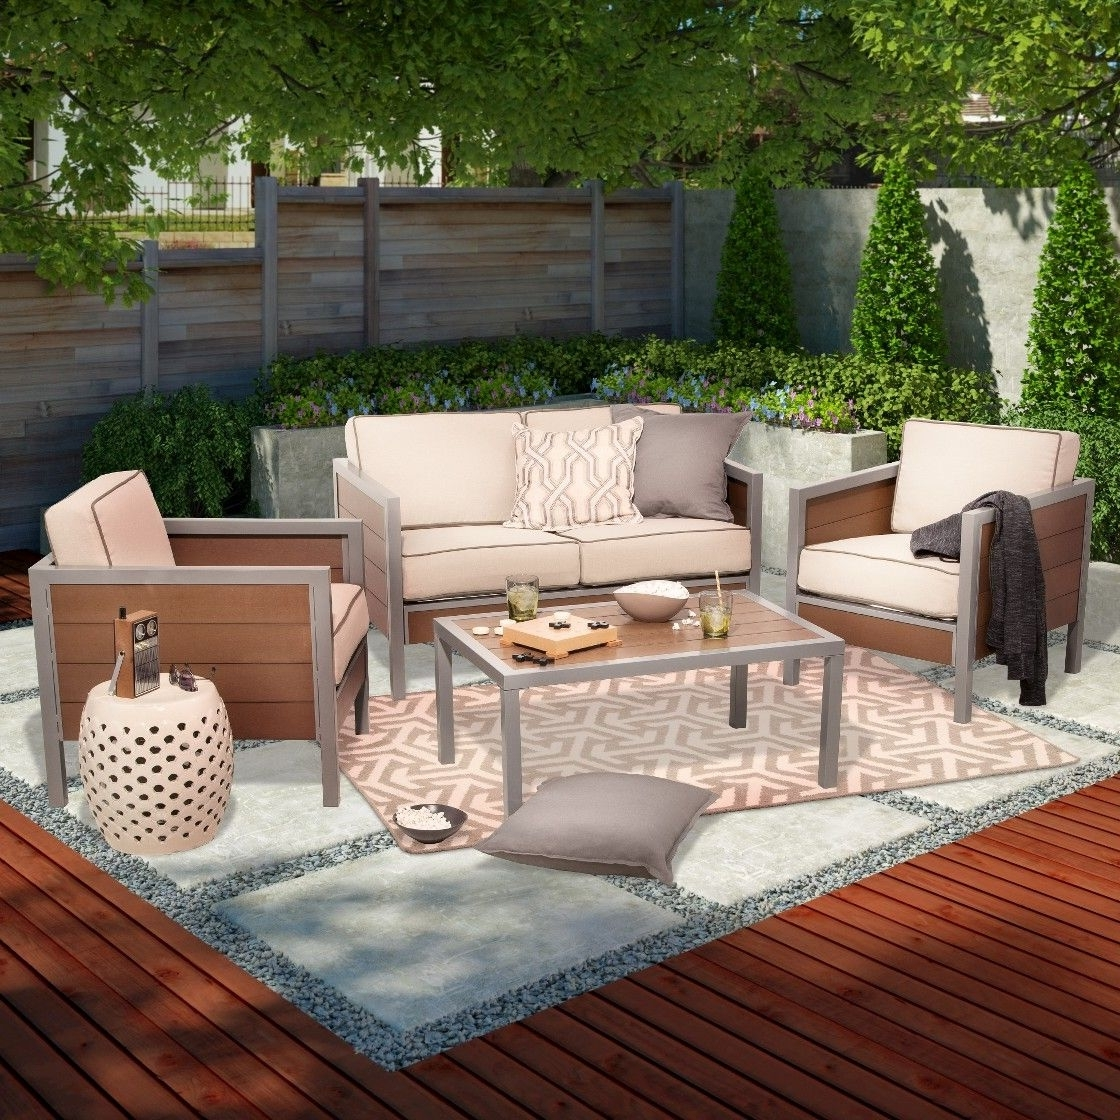 Target Patio Furniture Conversation Sets Intended For Most Popular 849. On Sale At Target. (View 17 of 20)